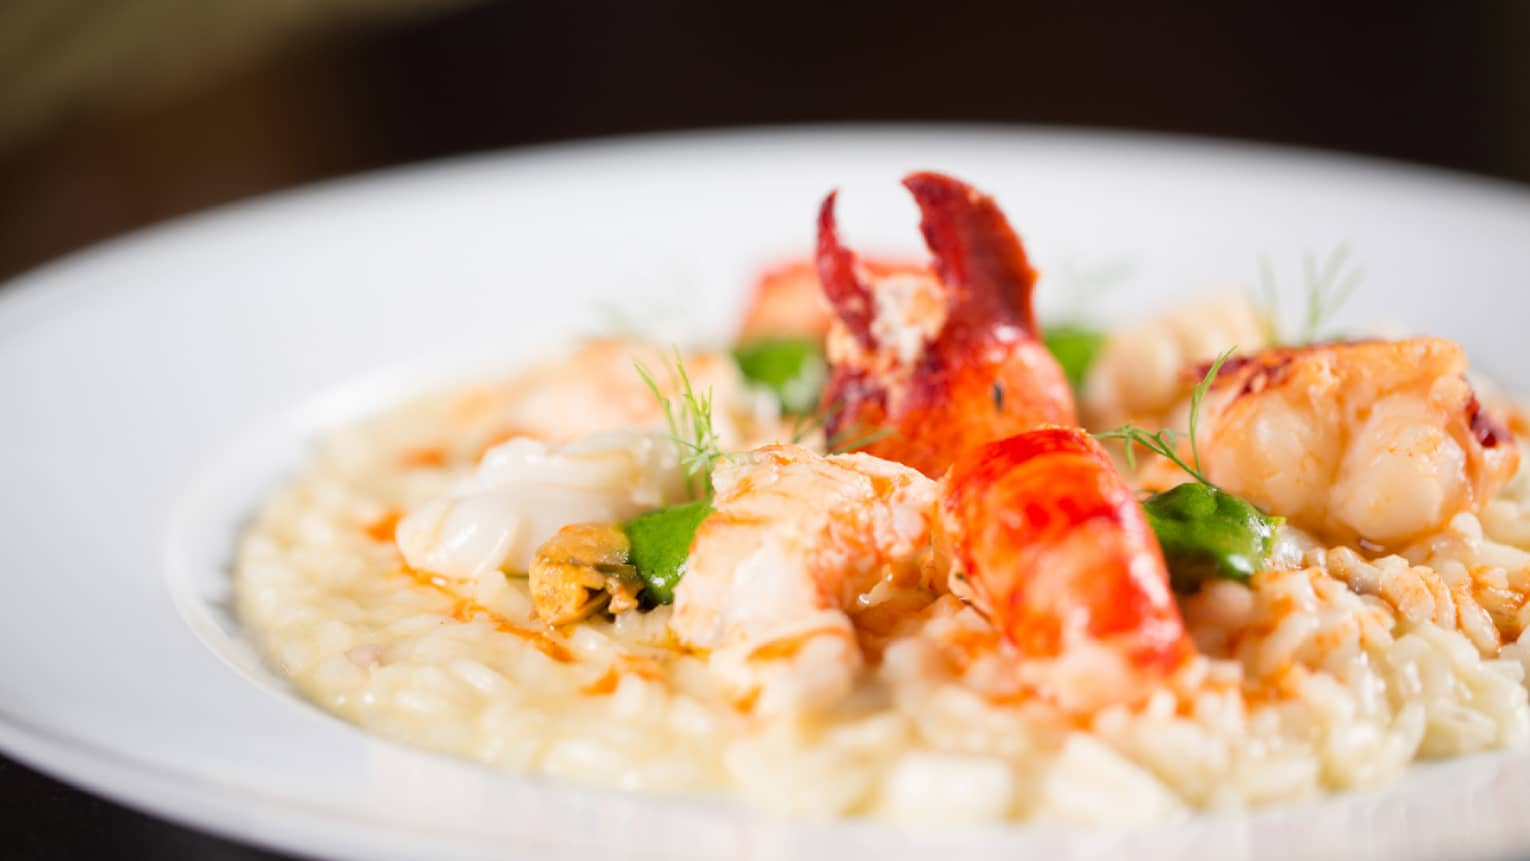 Creamy seafood risotto in white dish with lobster, prawns, langoustine and mussels